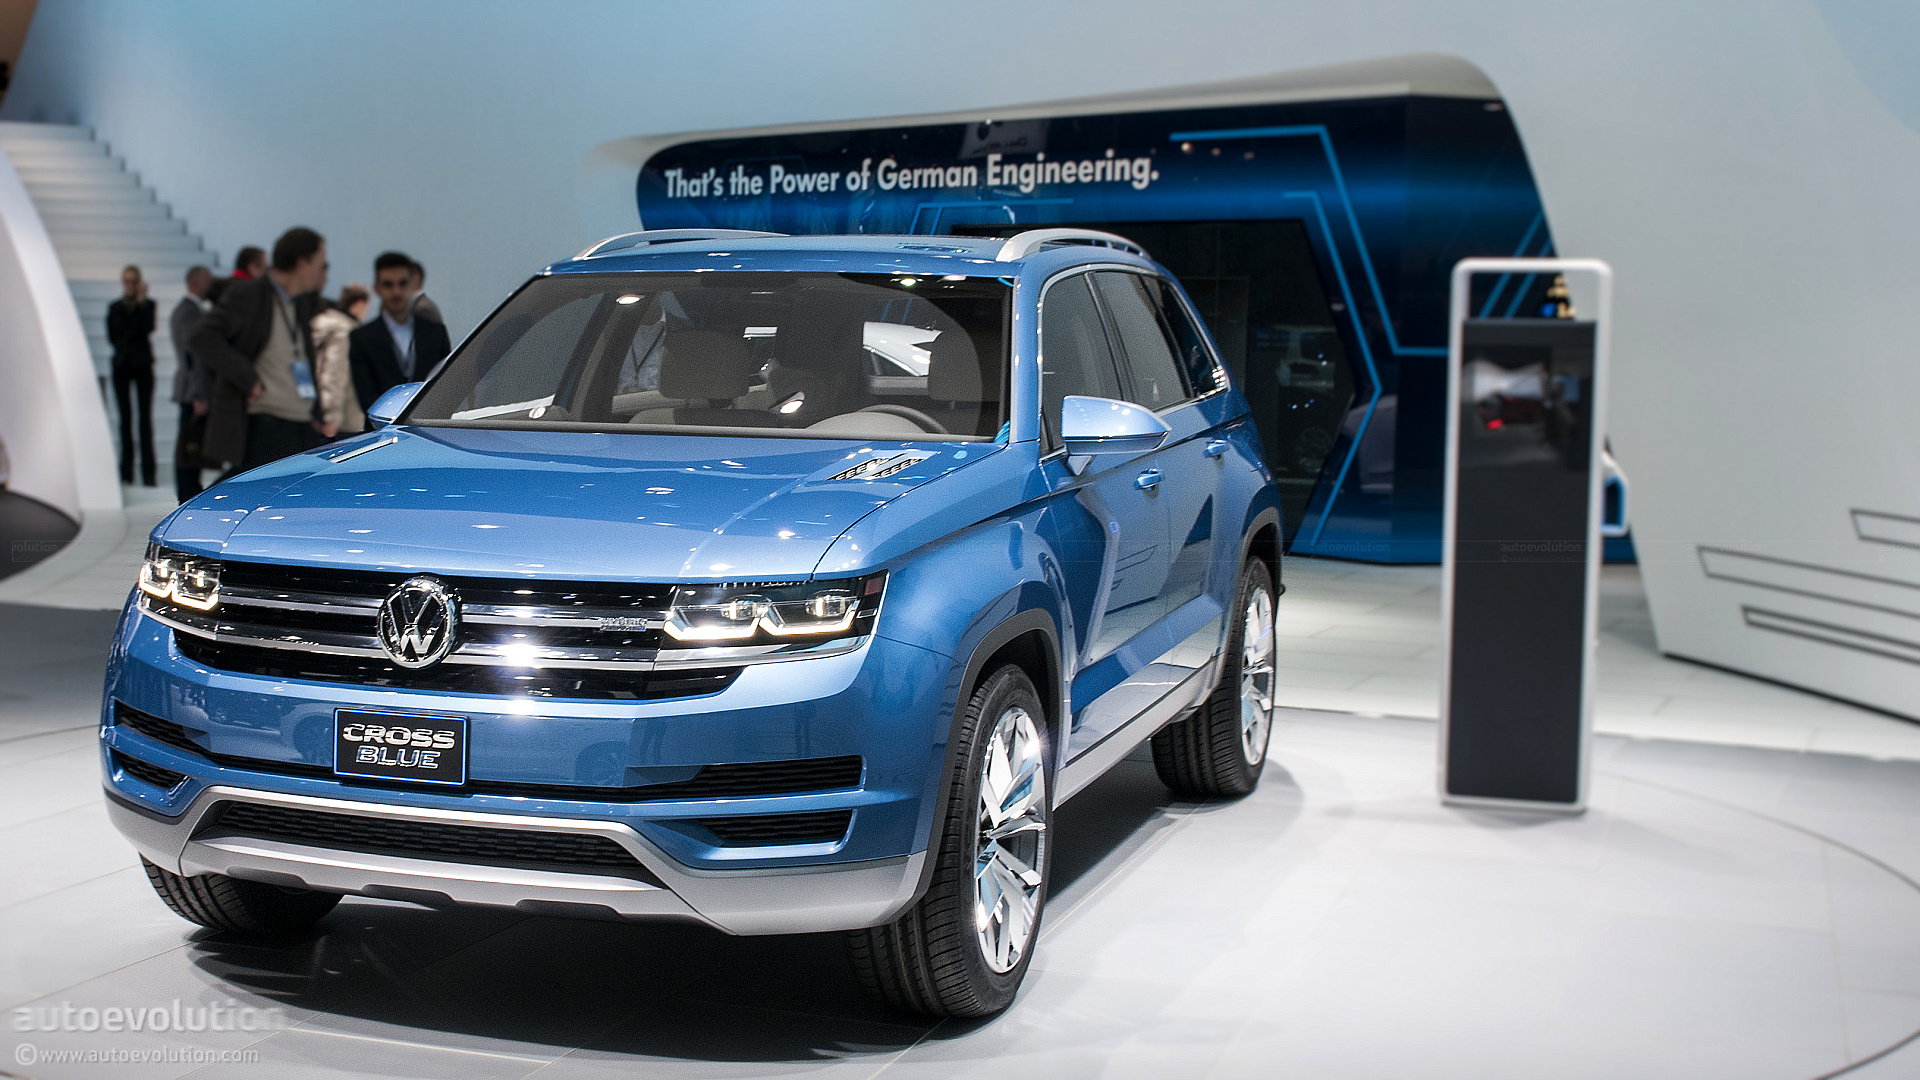 Volkswagen's New SUV Will Be Named Atlas, German Media Says - autoevolution